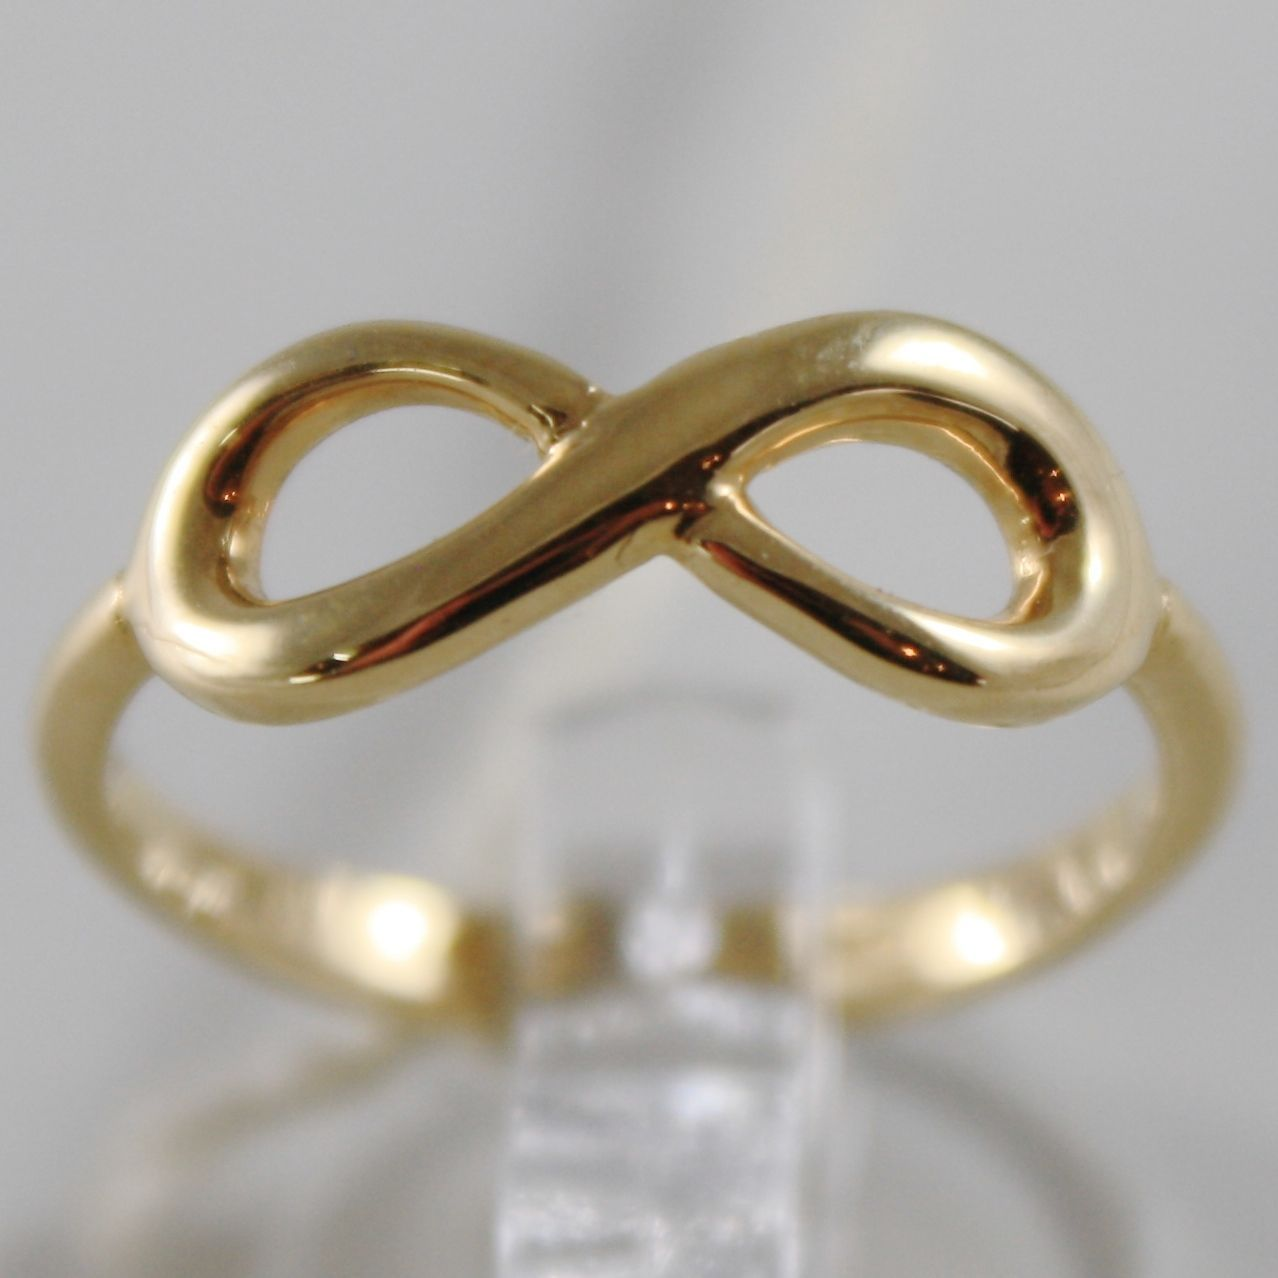 SOLID 18K YELLOW GOLD BAND INFINITE RING LUMINOUS ENDLESS INFINITY MADE IN ITALY